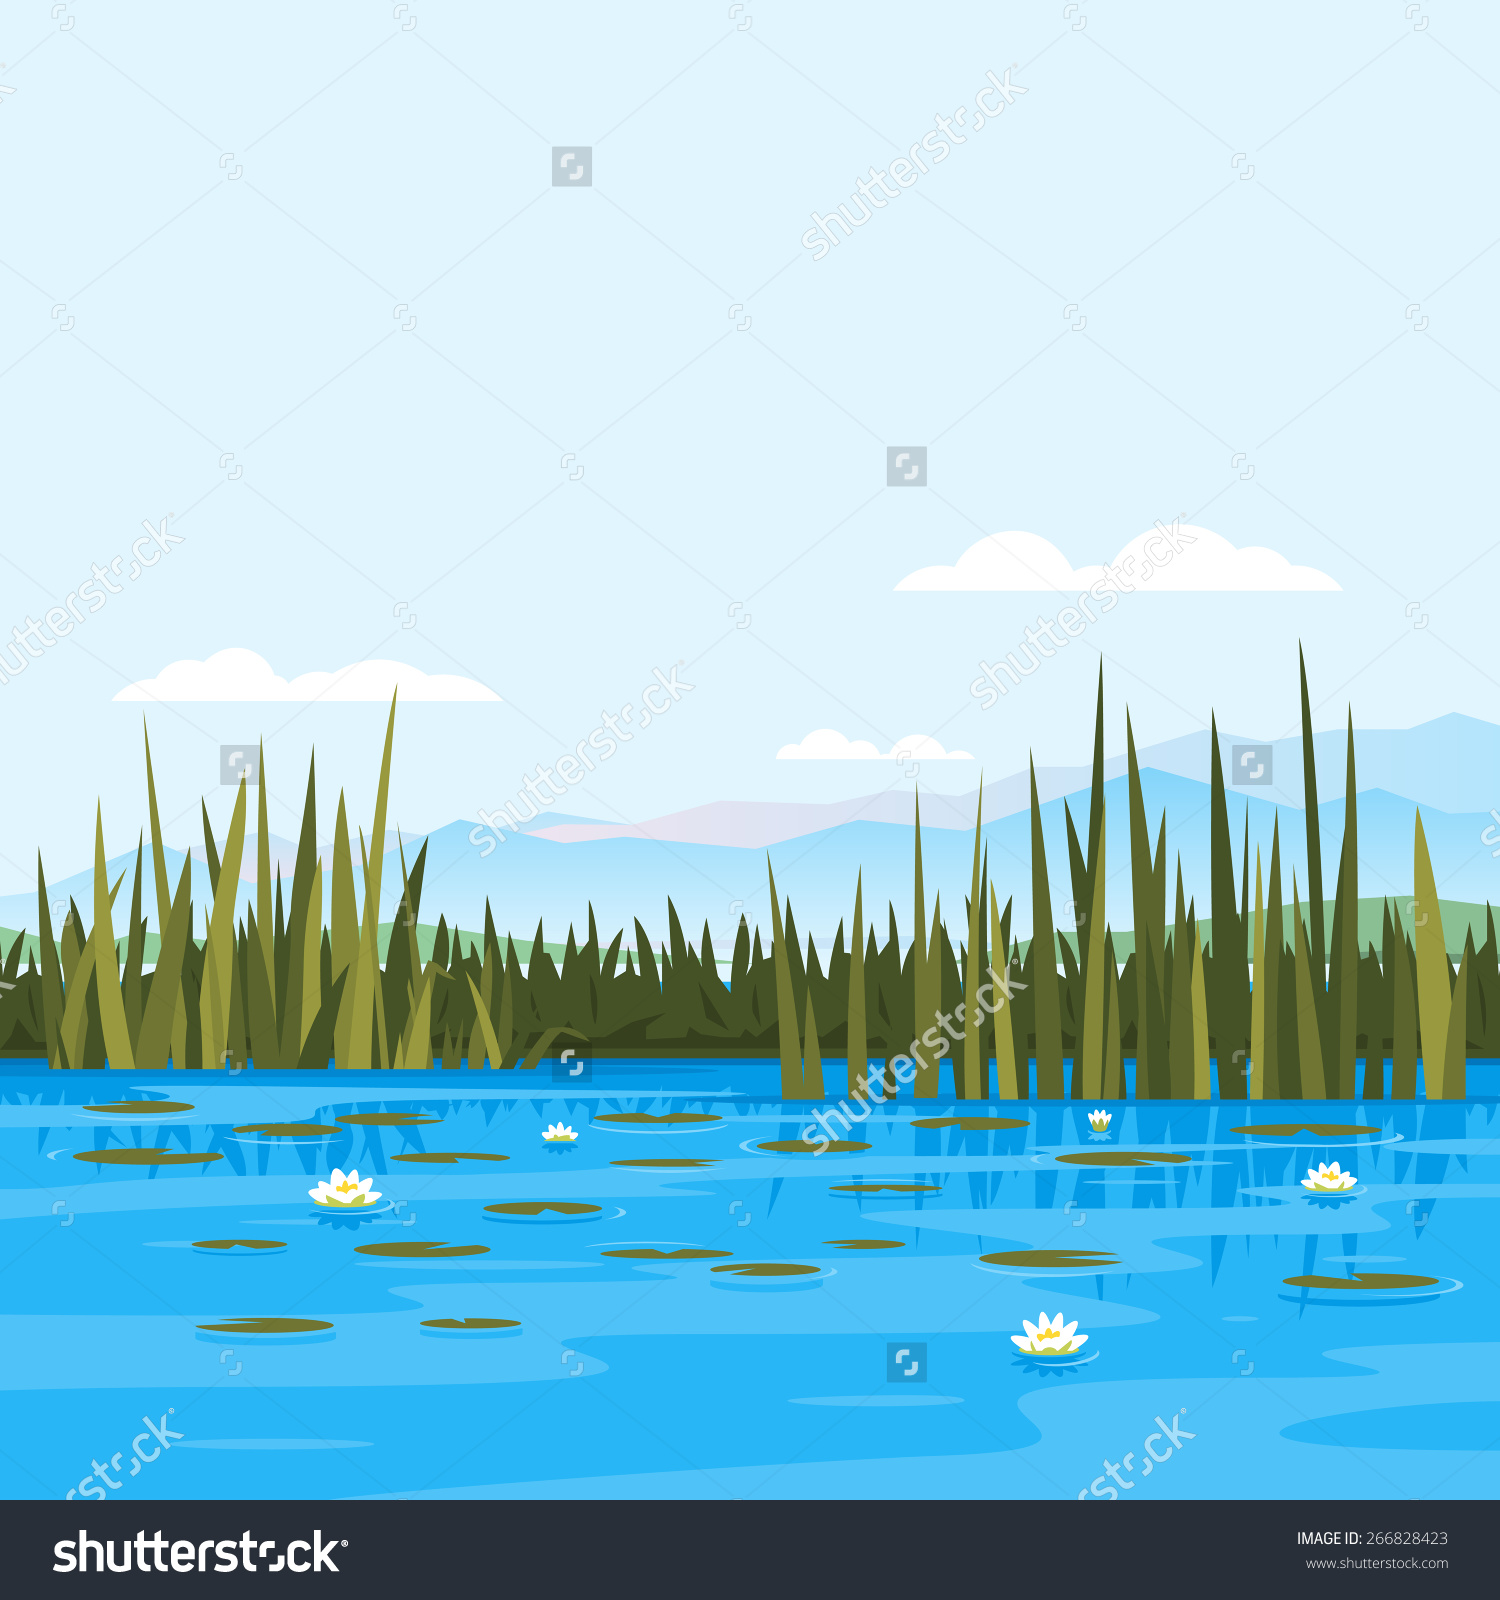 Lake water clipart - Clipground